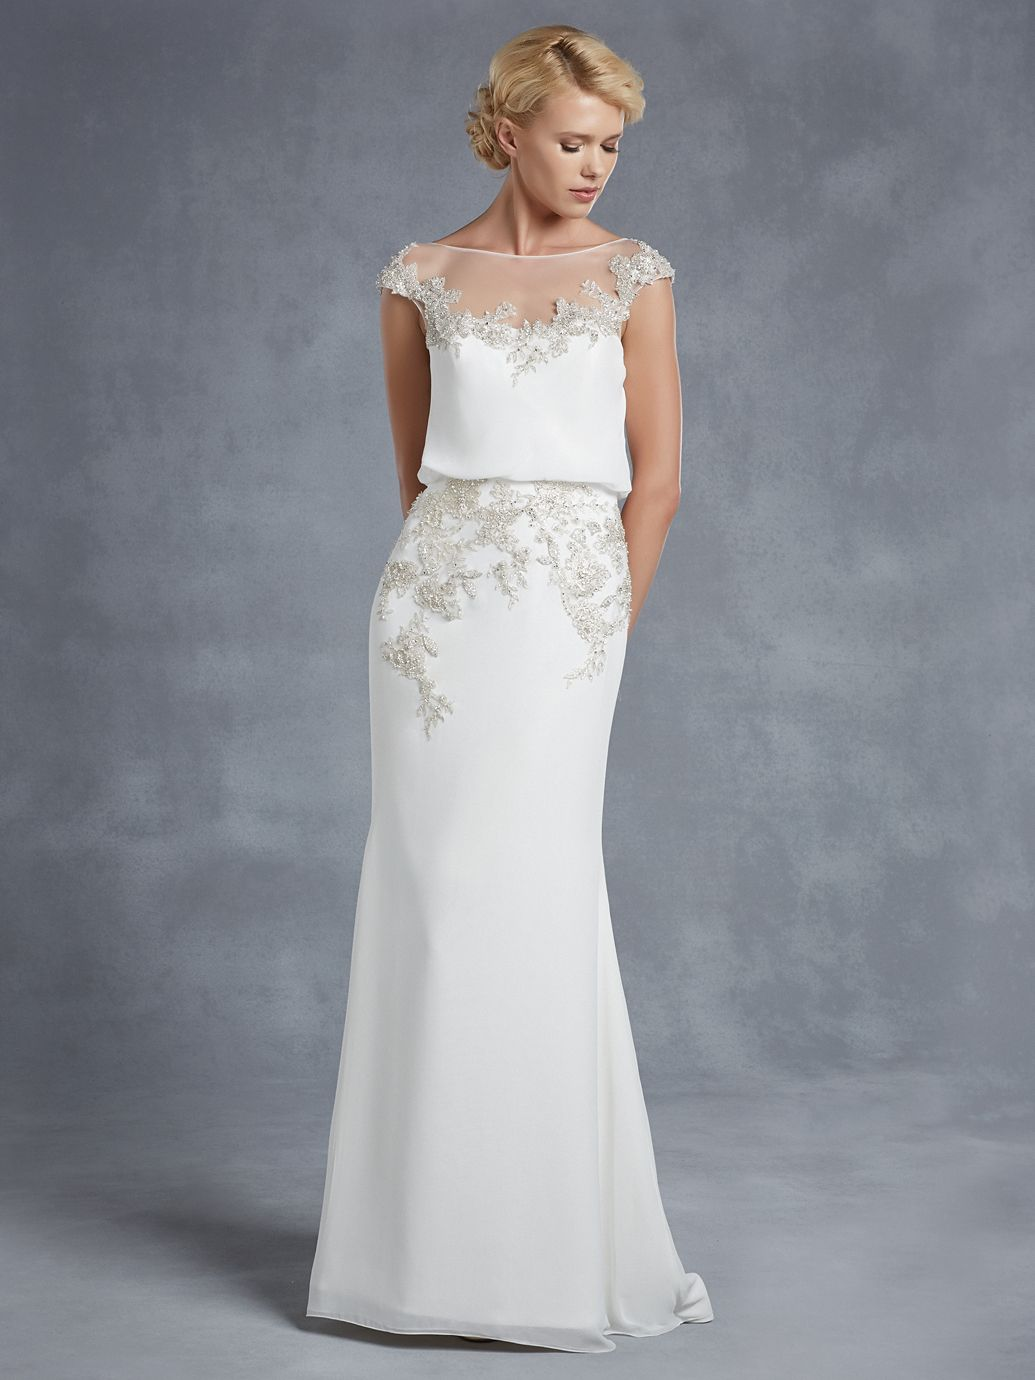 Great Enzoani Harlem Size Sample Wedding Dresses